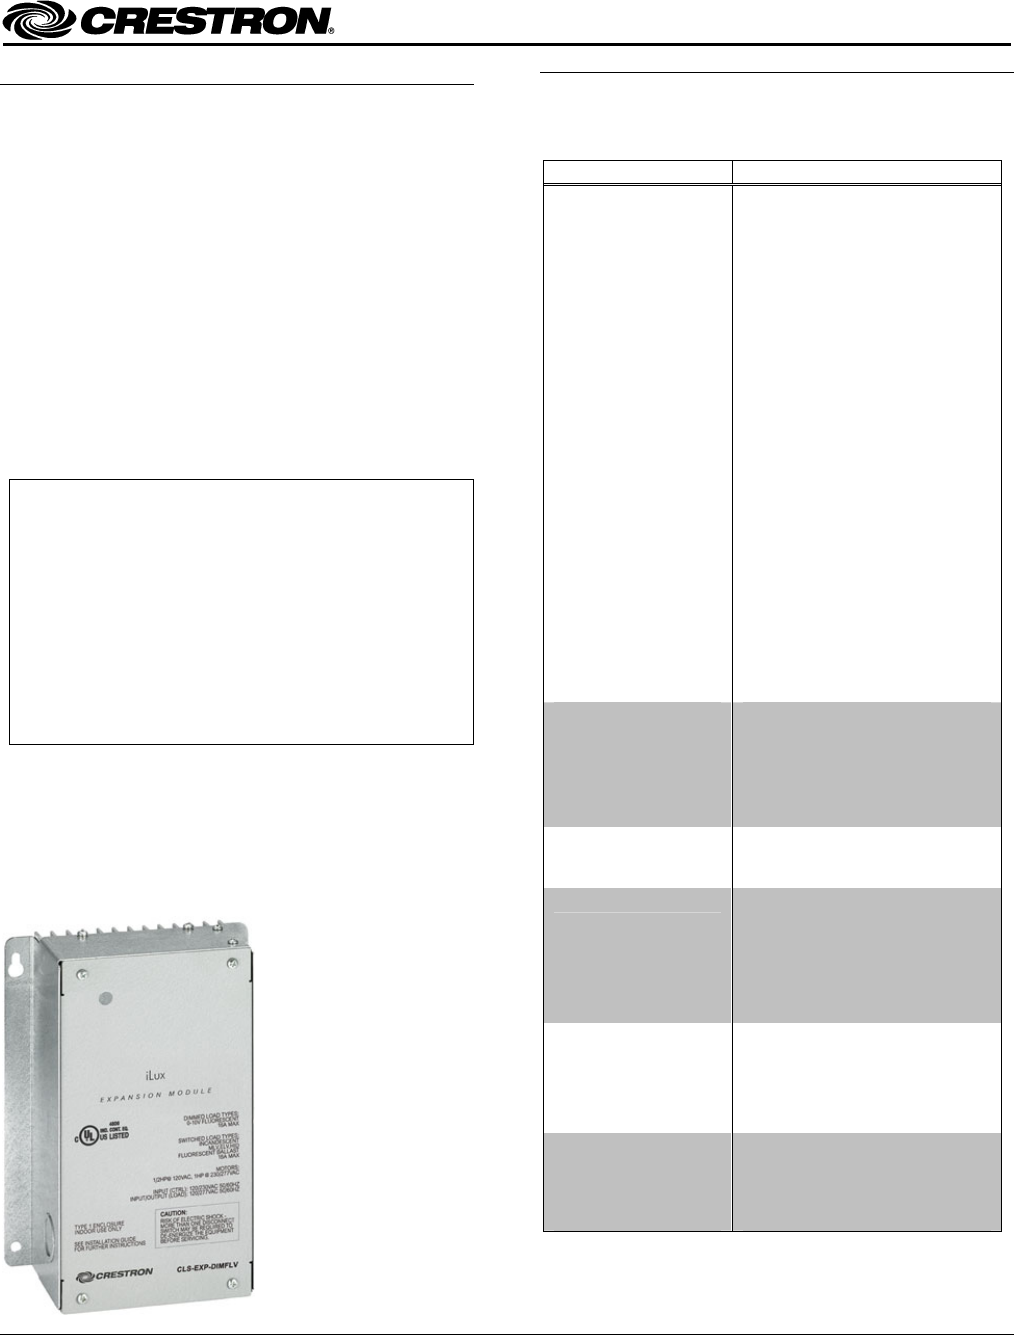 Crestron Electronic Work Light Cls Exp Dimflv User Guide Lighting Dimmer Wire Diagram Electronics Inc Installation